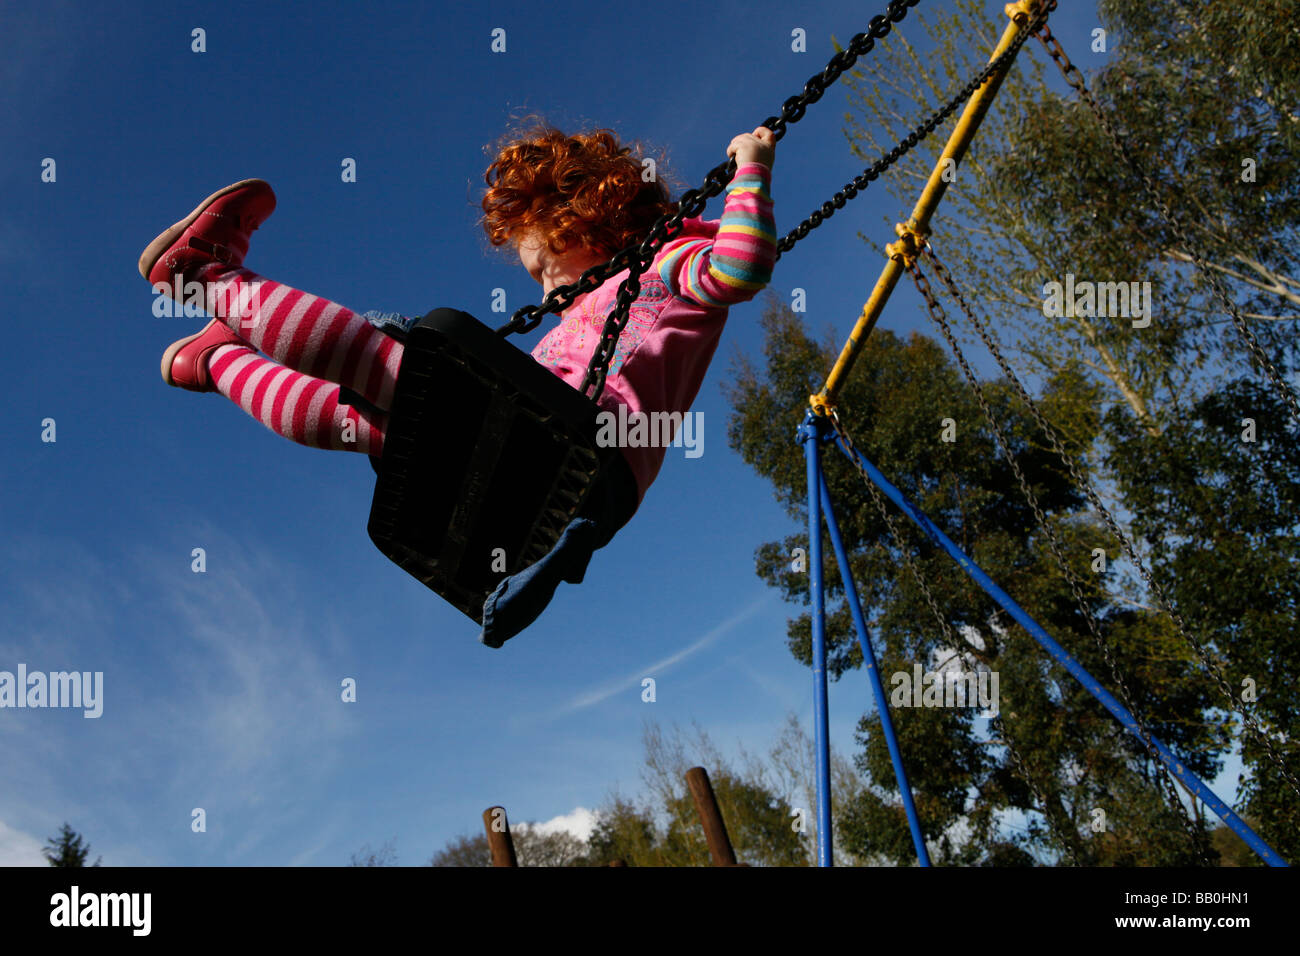 Three year old girl with red hair playing on the swings in the park in the sunshine. - Stock Image